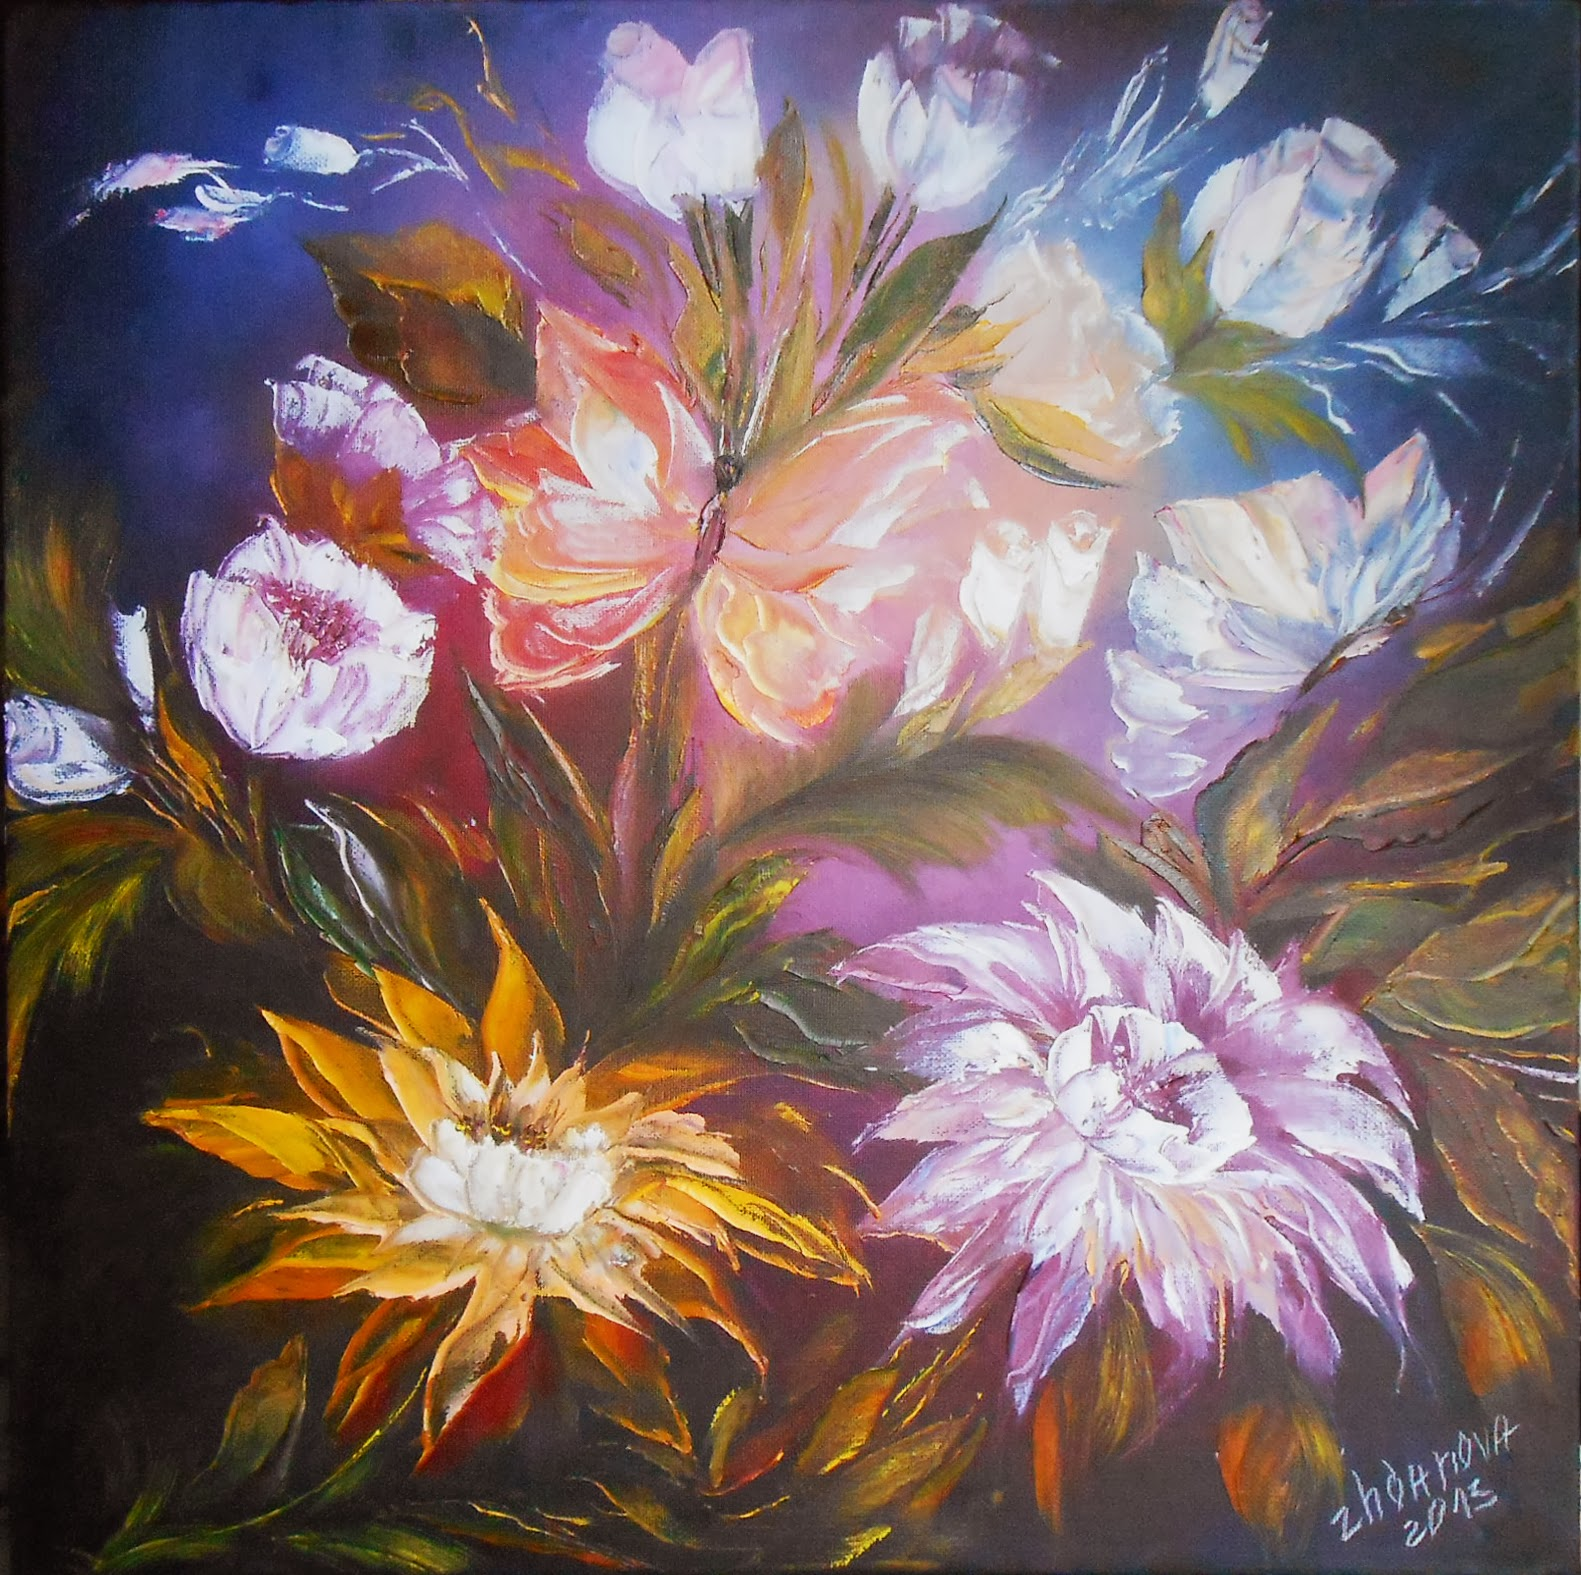 Modern oil russian Painting in style abstract, handmade. Flower oil painting on canvas, a palette knife painting.